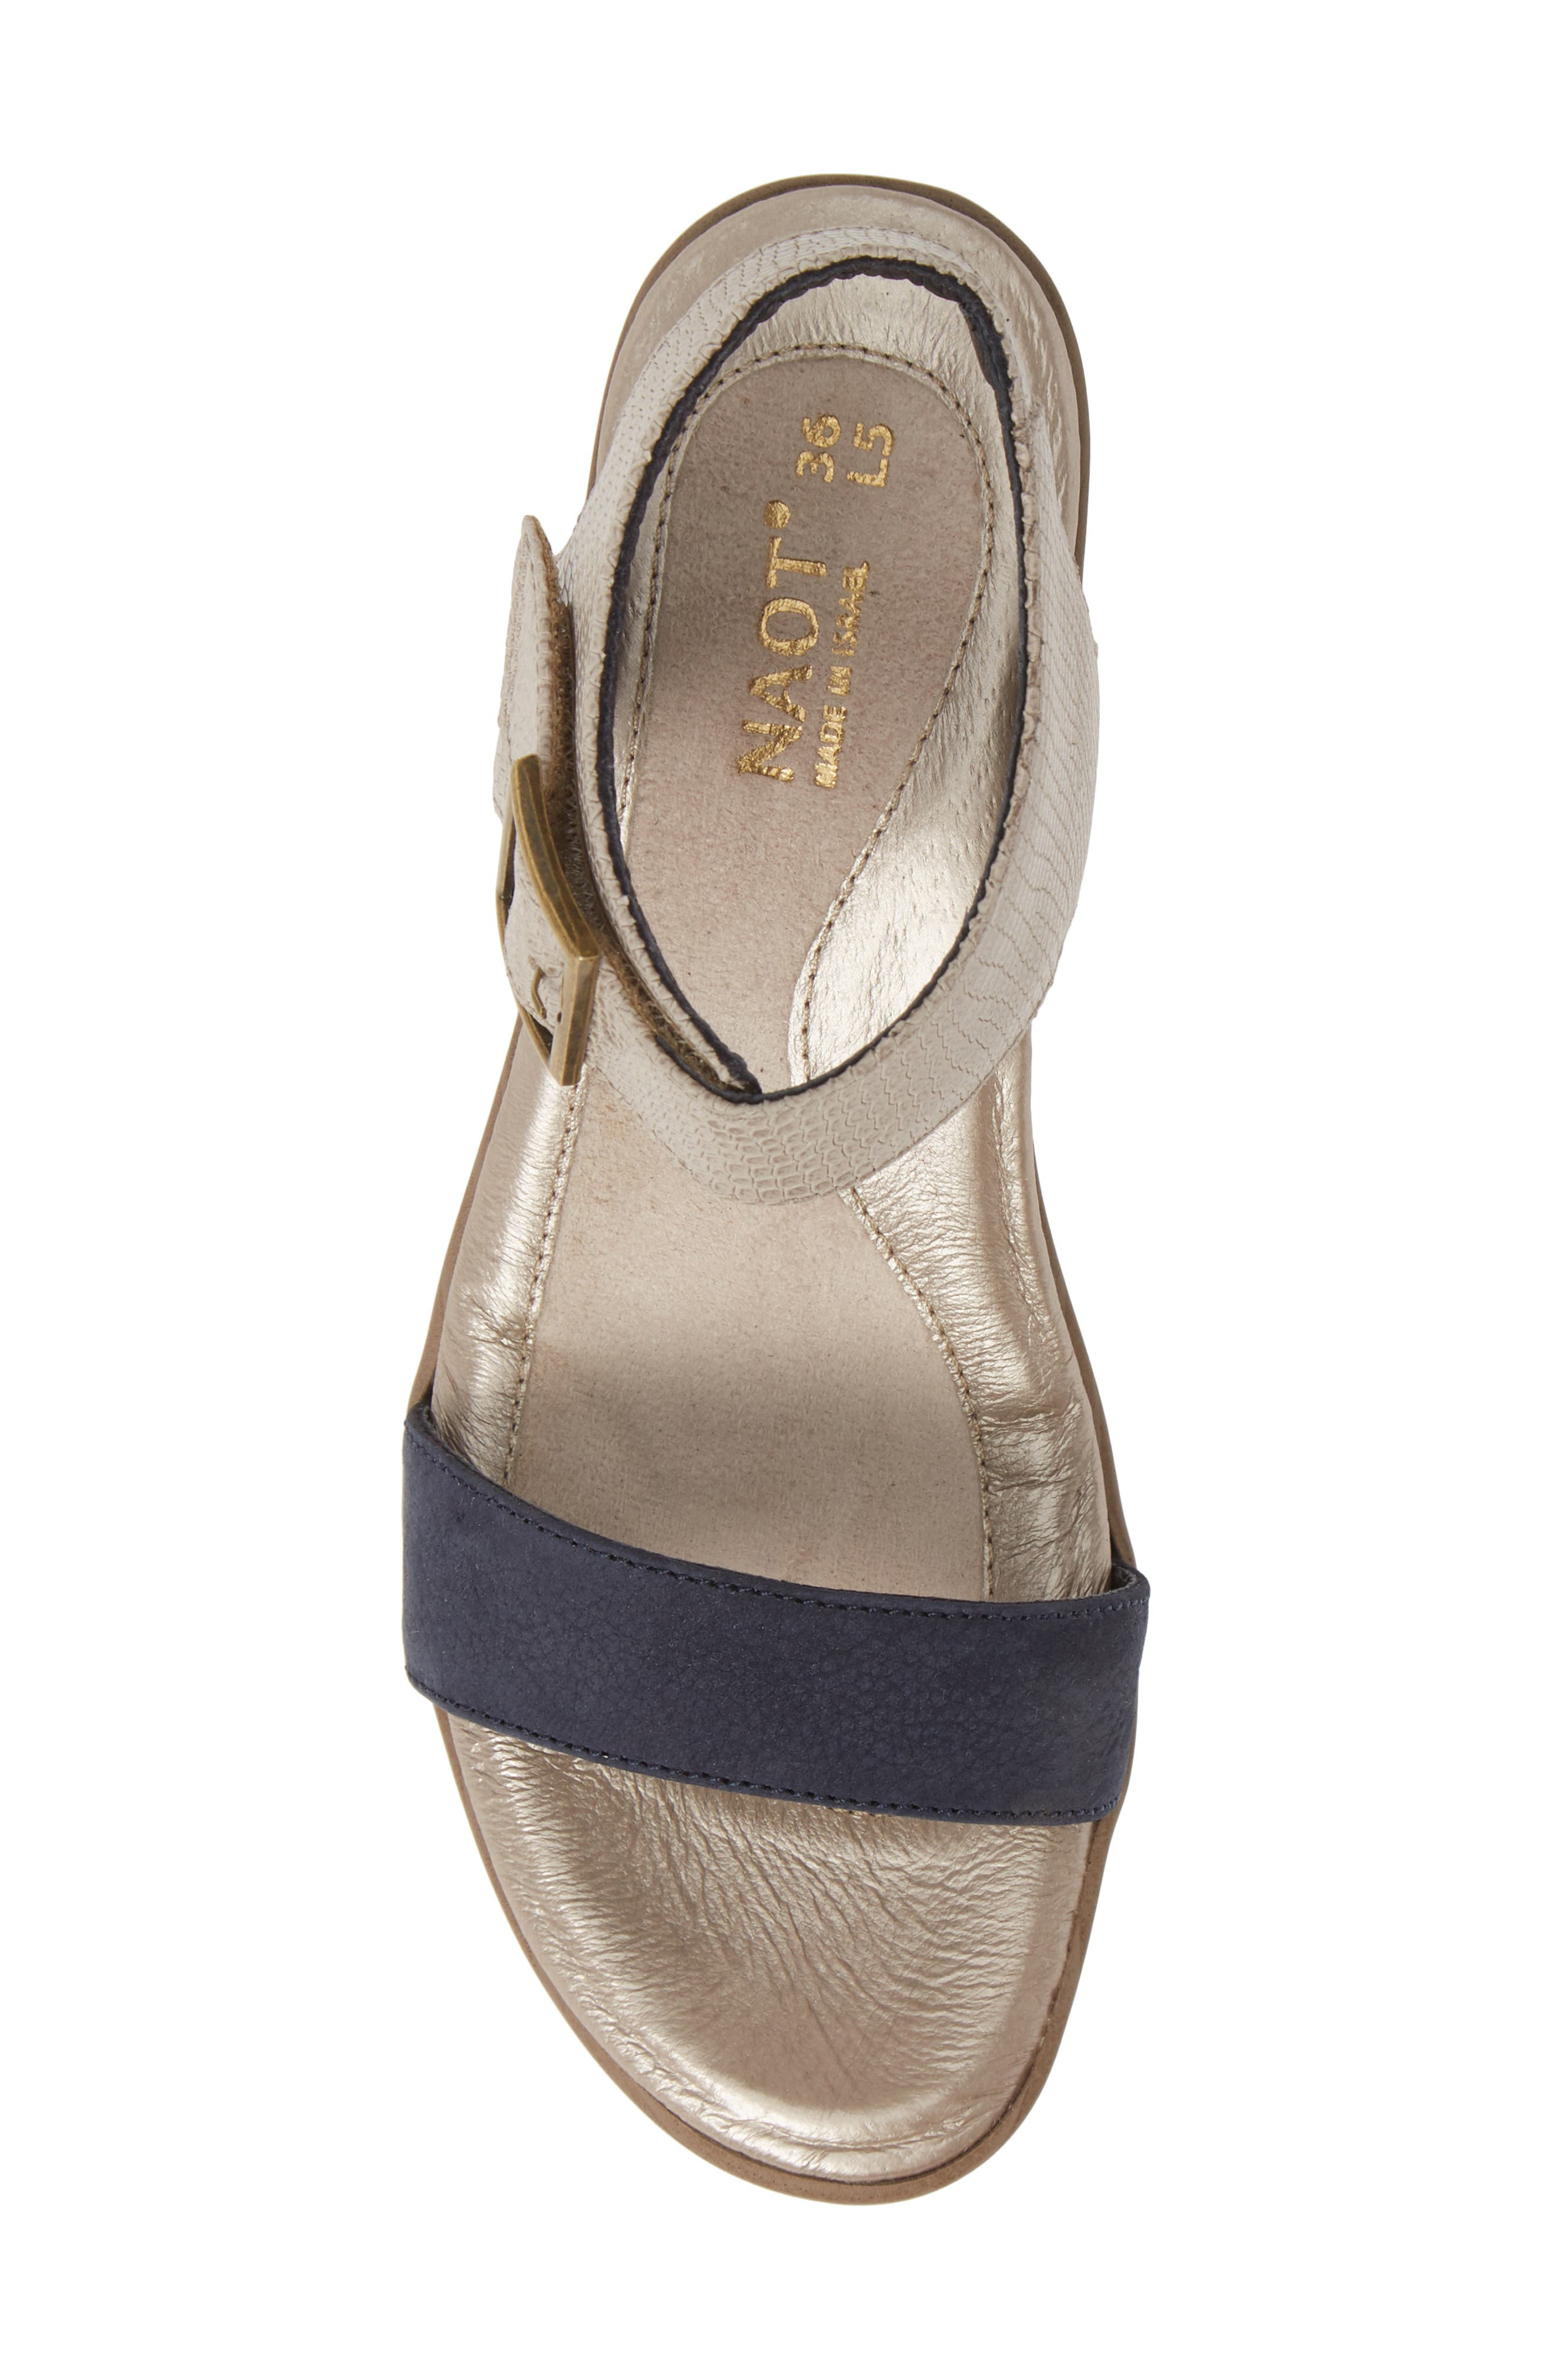 NAOT, Caprice Wedge Sandal, Alternate thumbnail 5, color, BEIGE LIZARD/ NAVY VELVET